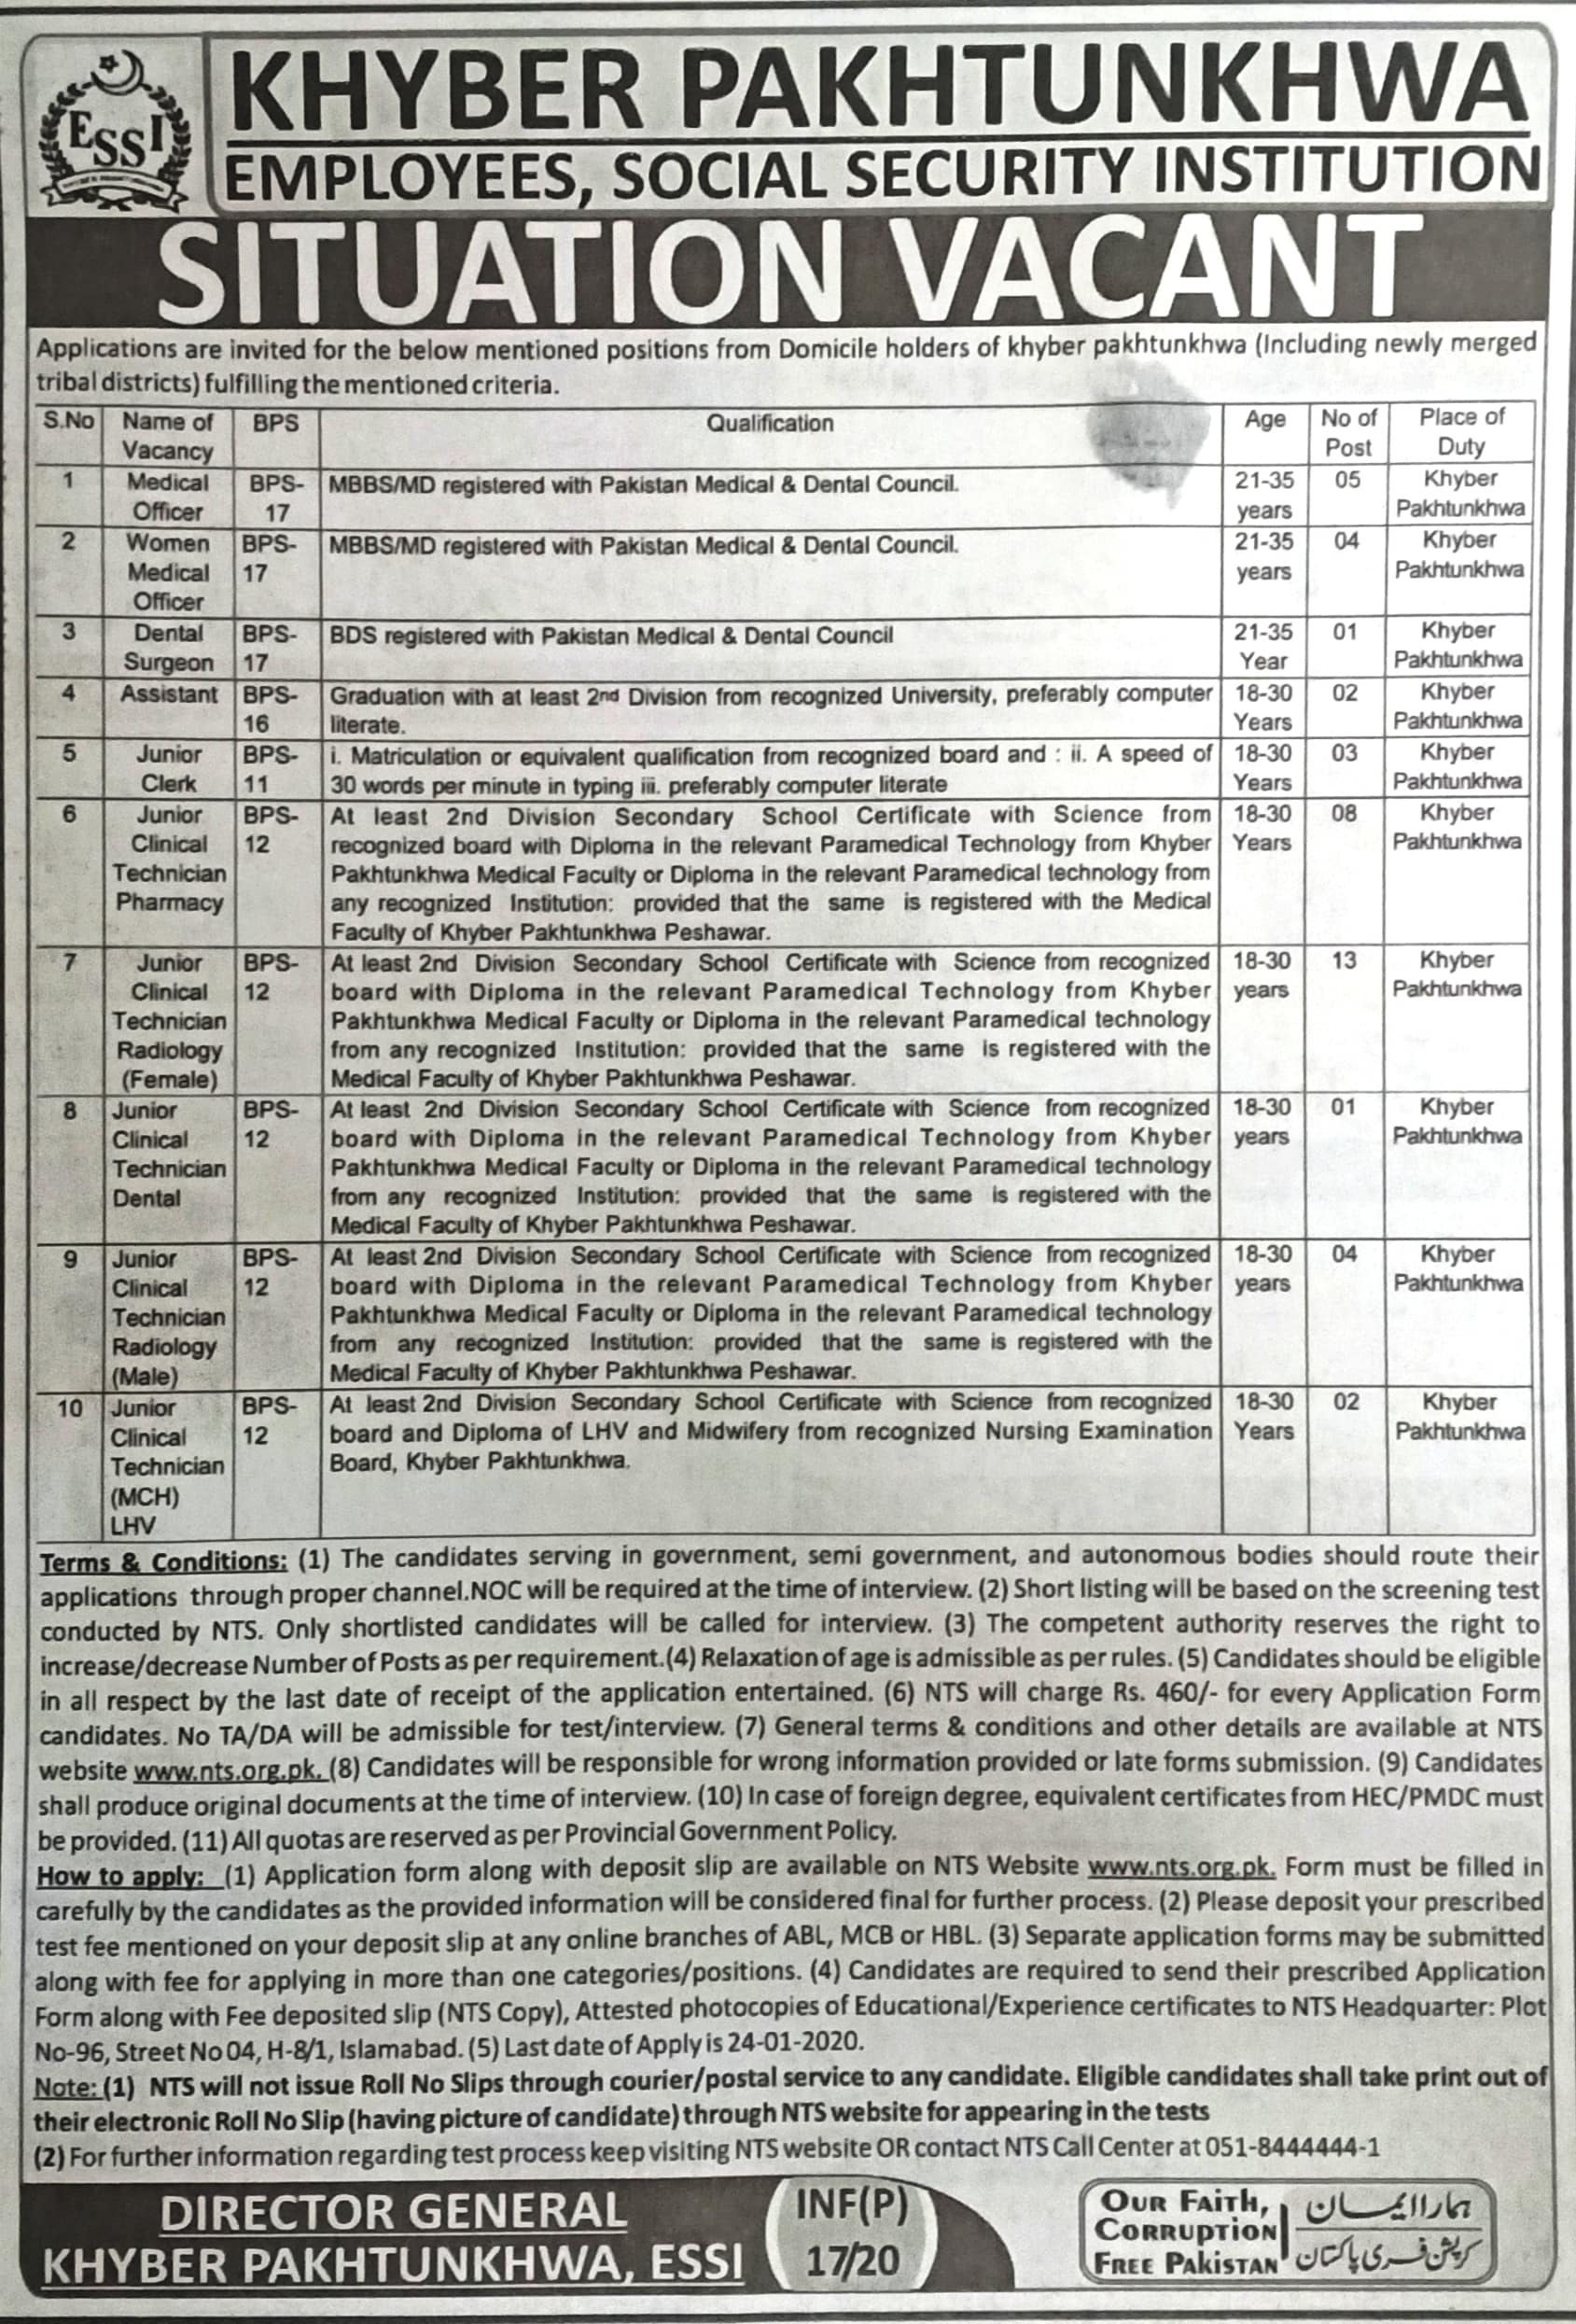 Employees Social Security Institution Jobs ESSI KPK Via NTS